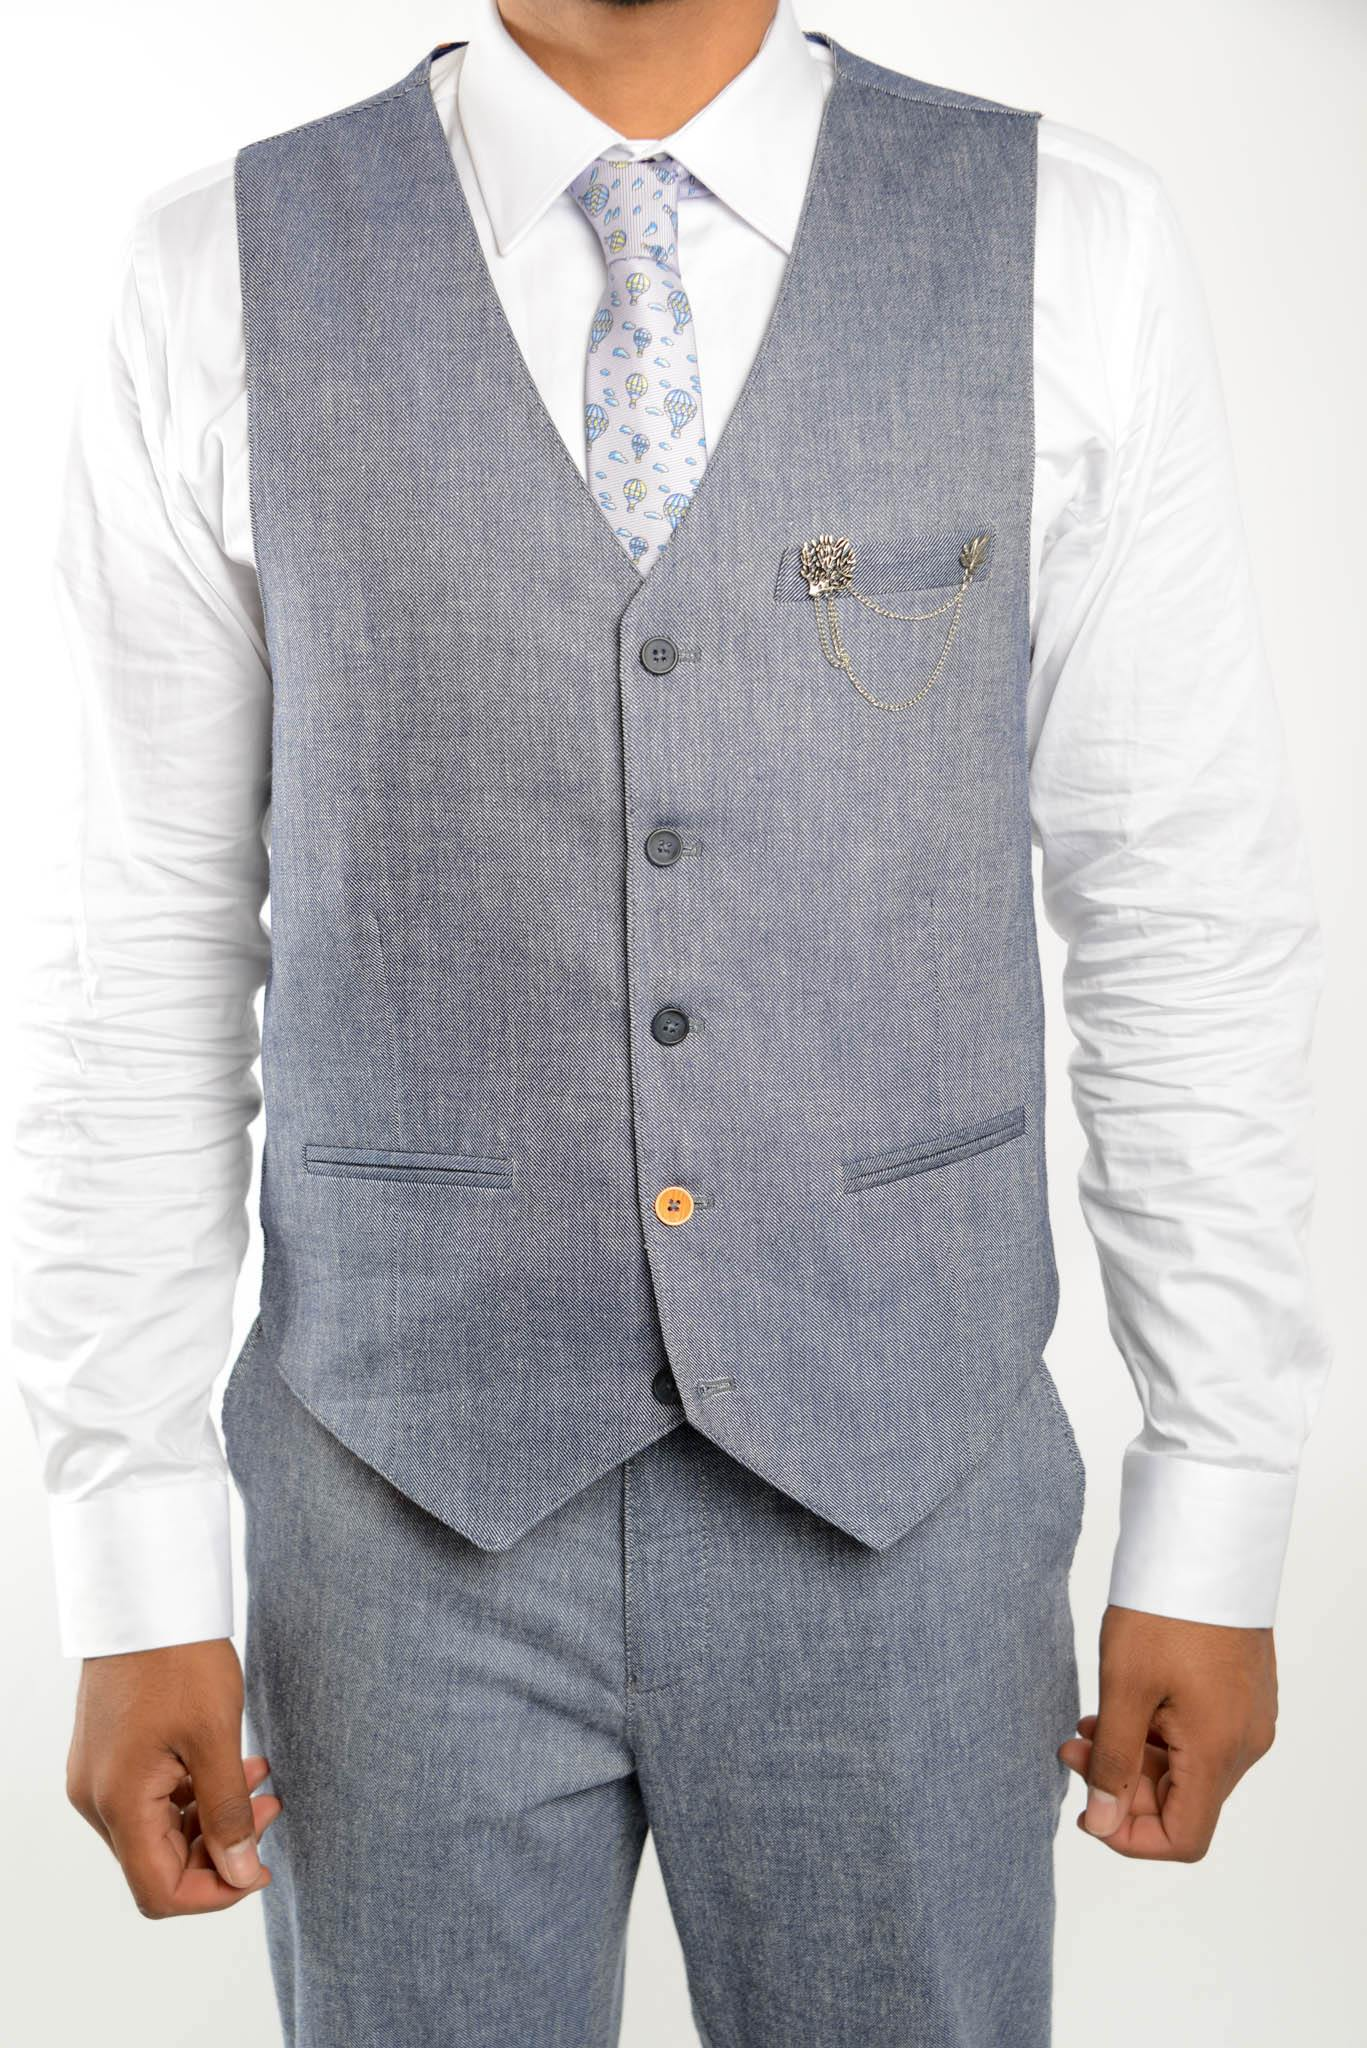 Euro Light Twill Vest - Haight & Ashbury